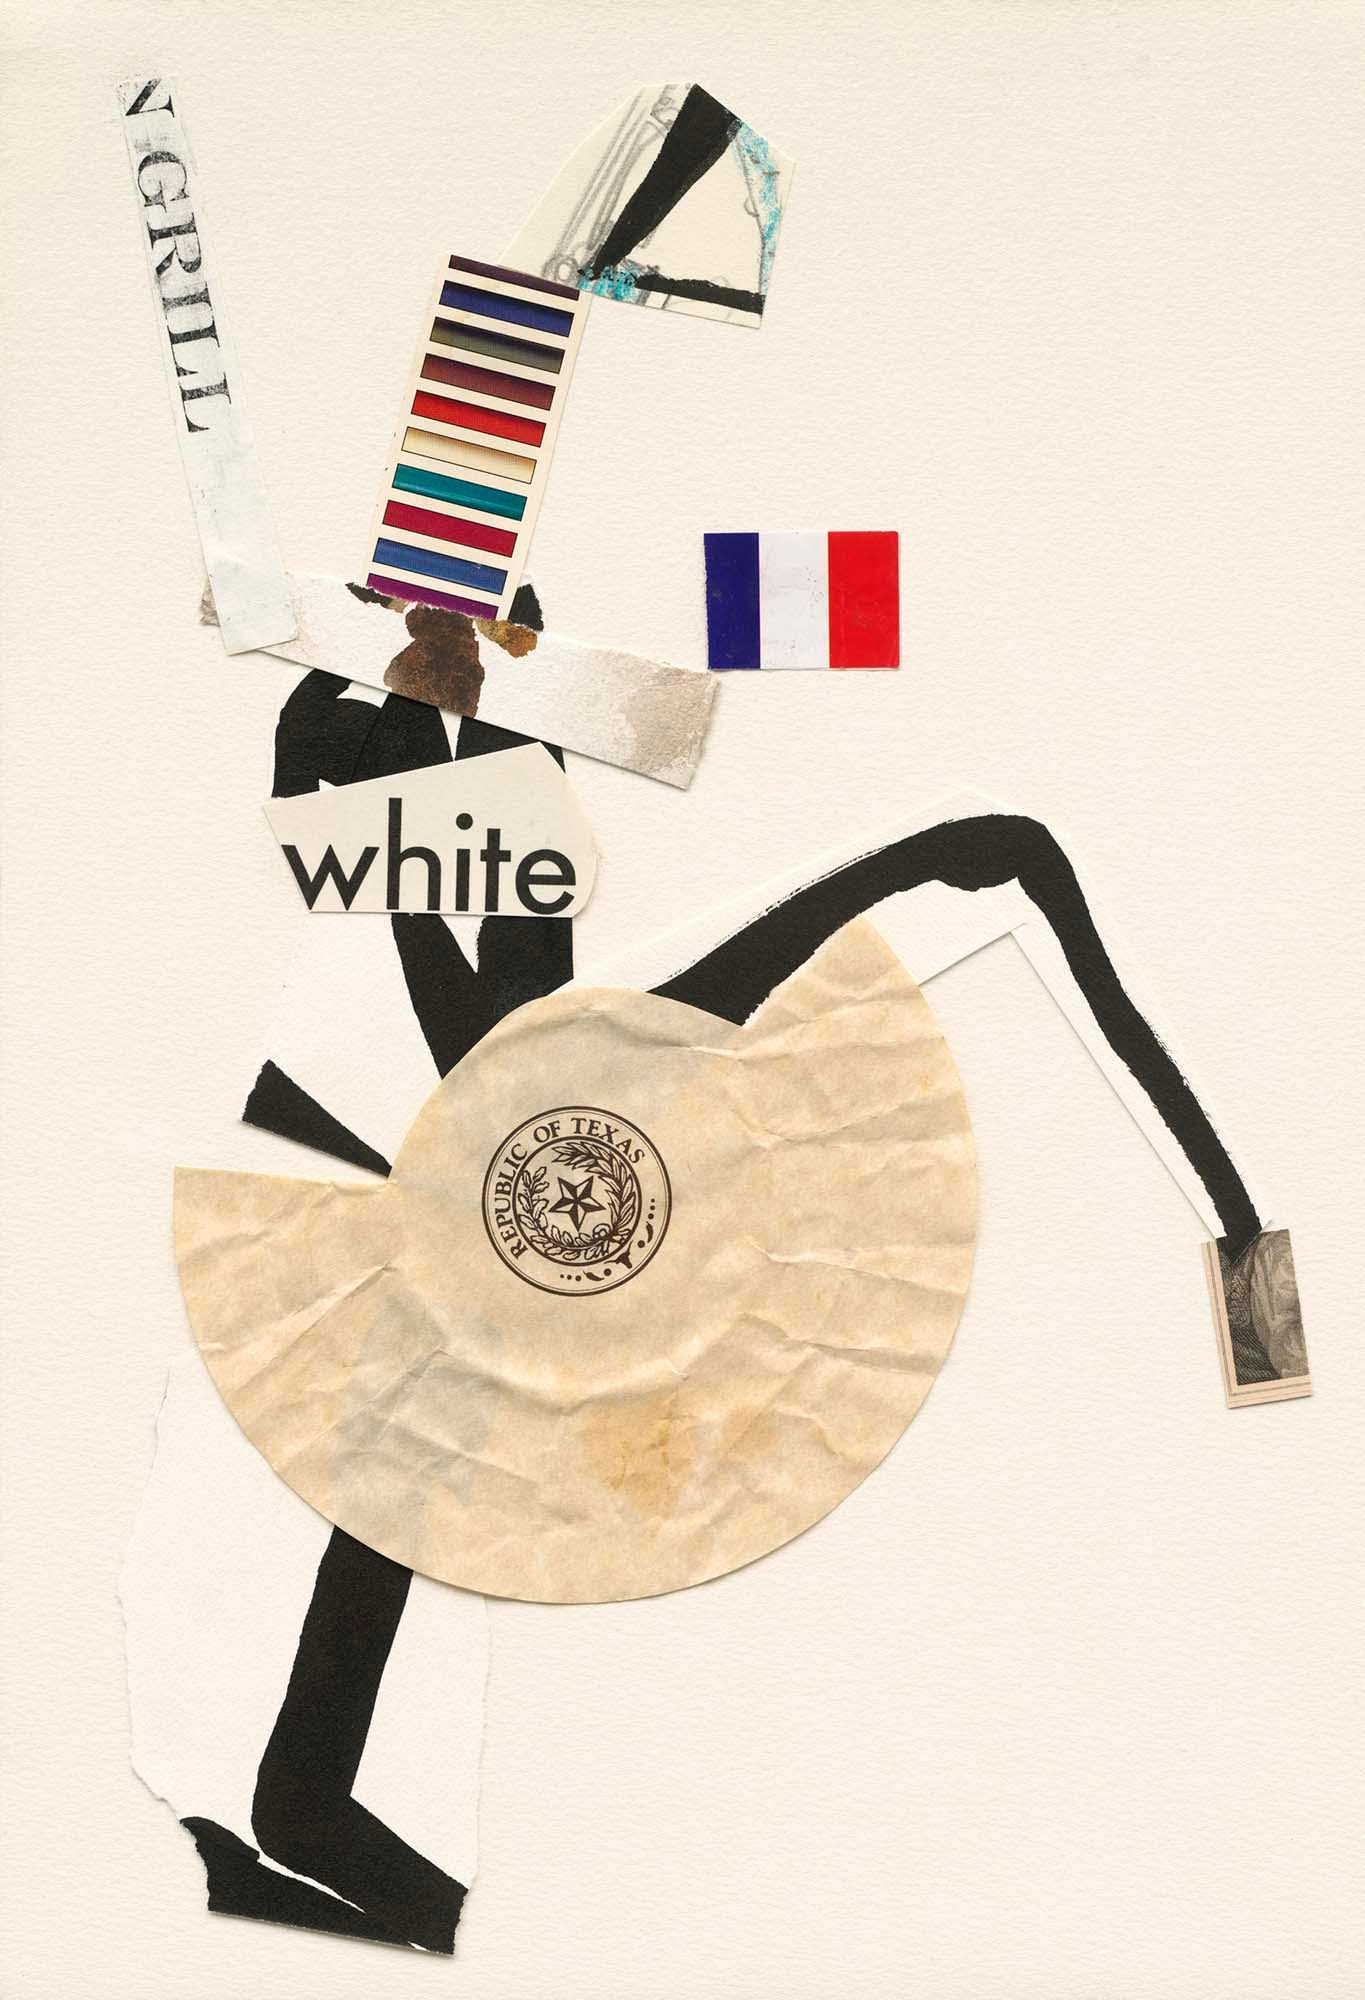 White, Mix Media Collage Series